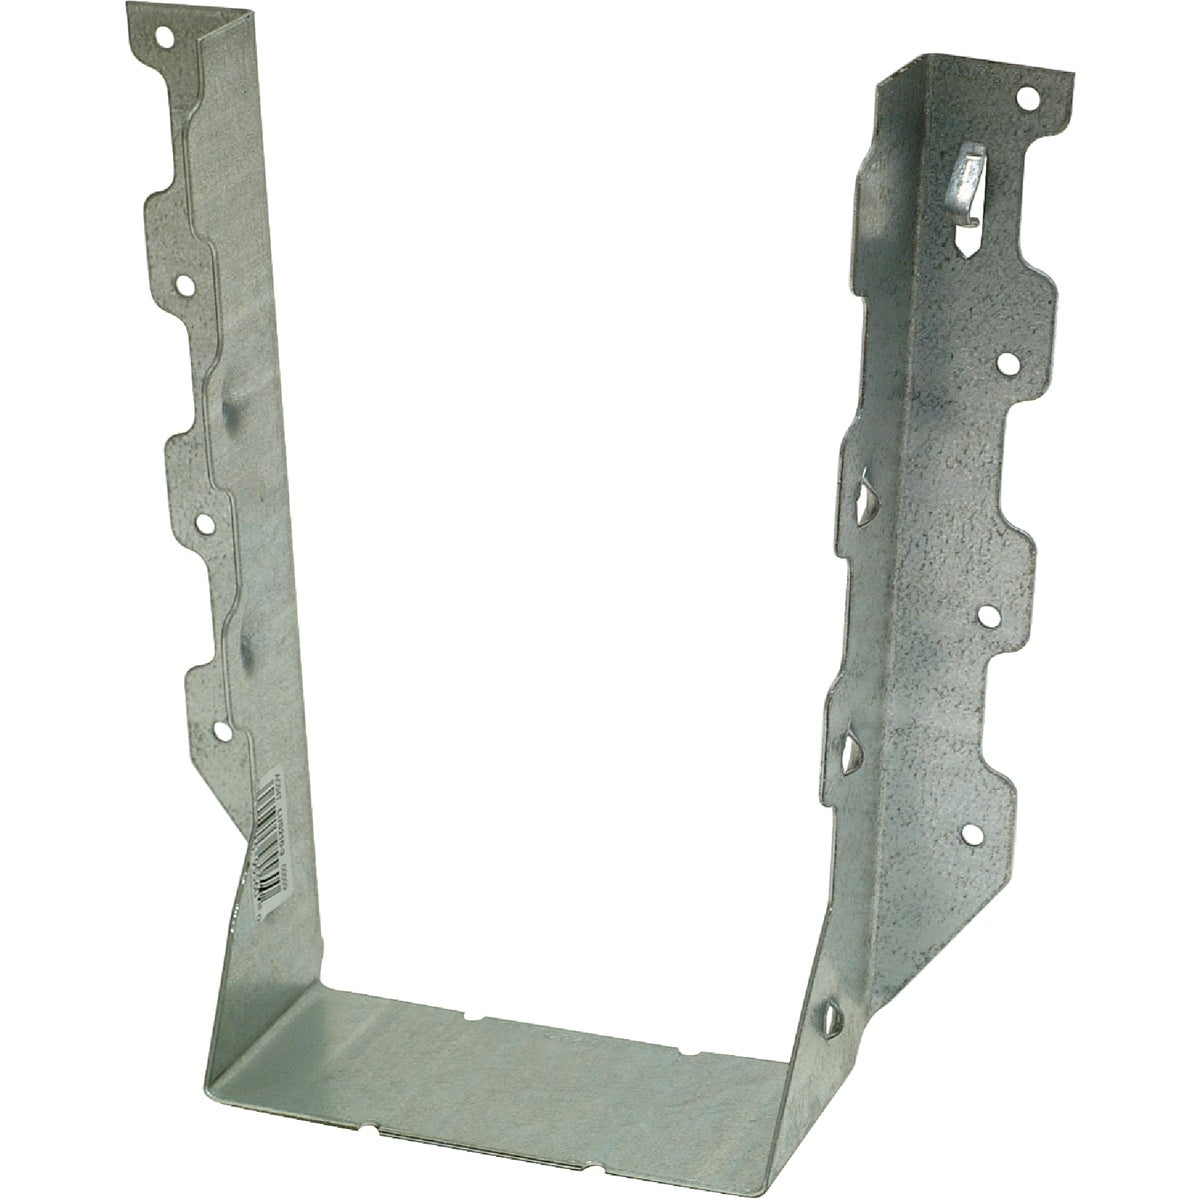 2X10 TRIPLE JOIST HANGER - LUS210-3 by Simpson Strong Tie